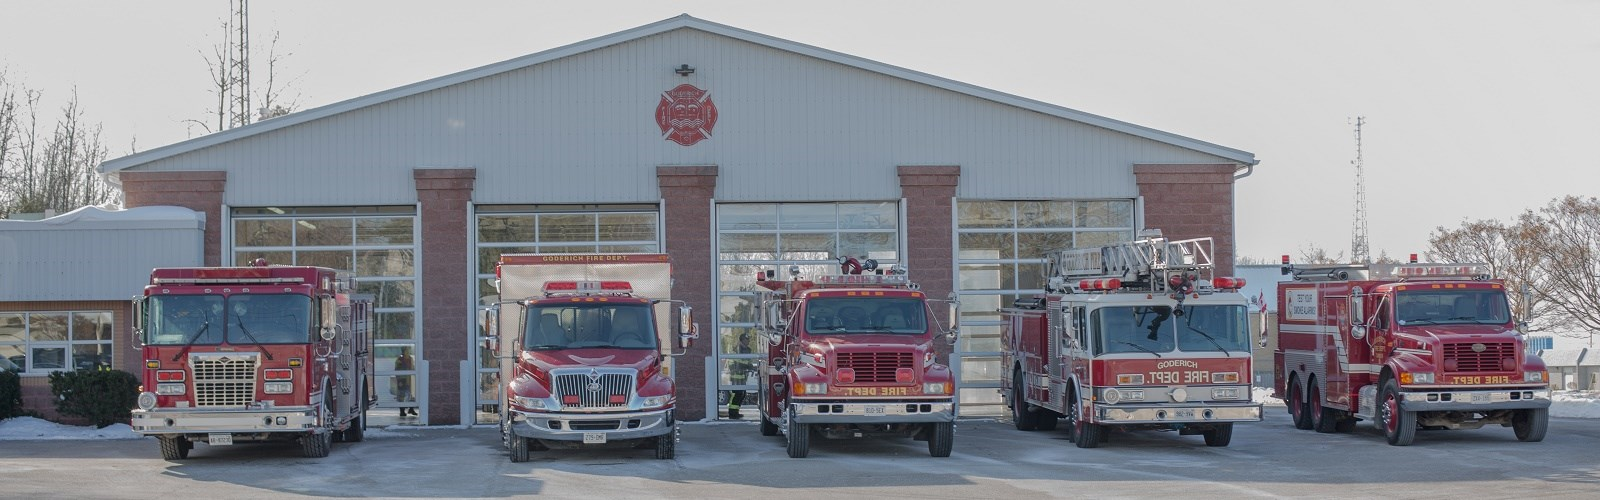 Goderich Fire Hall, 248 Suncoast Drive East